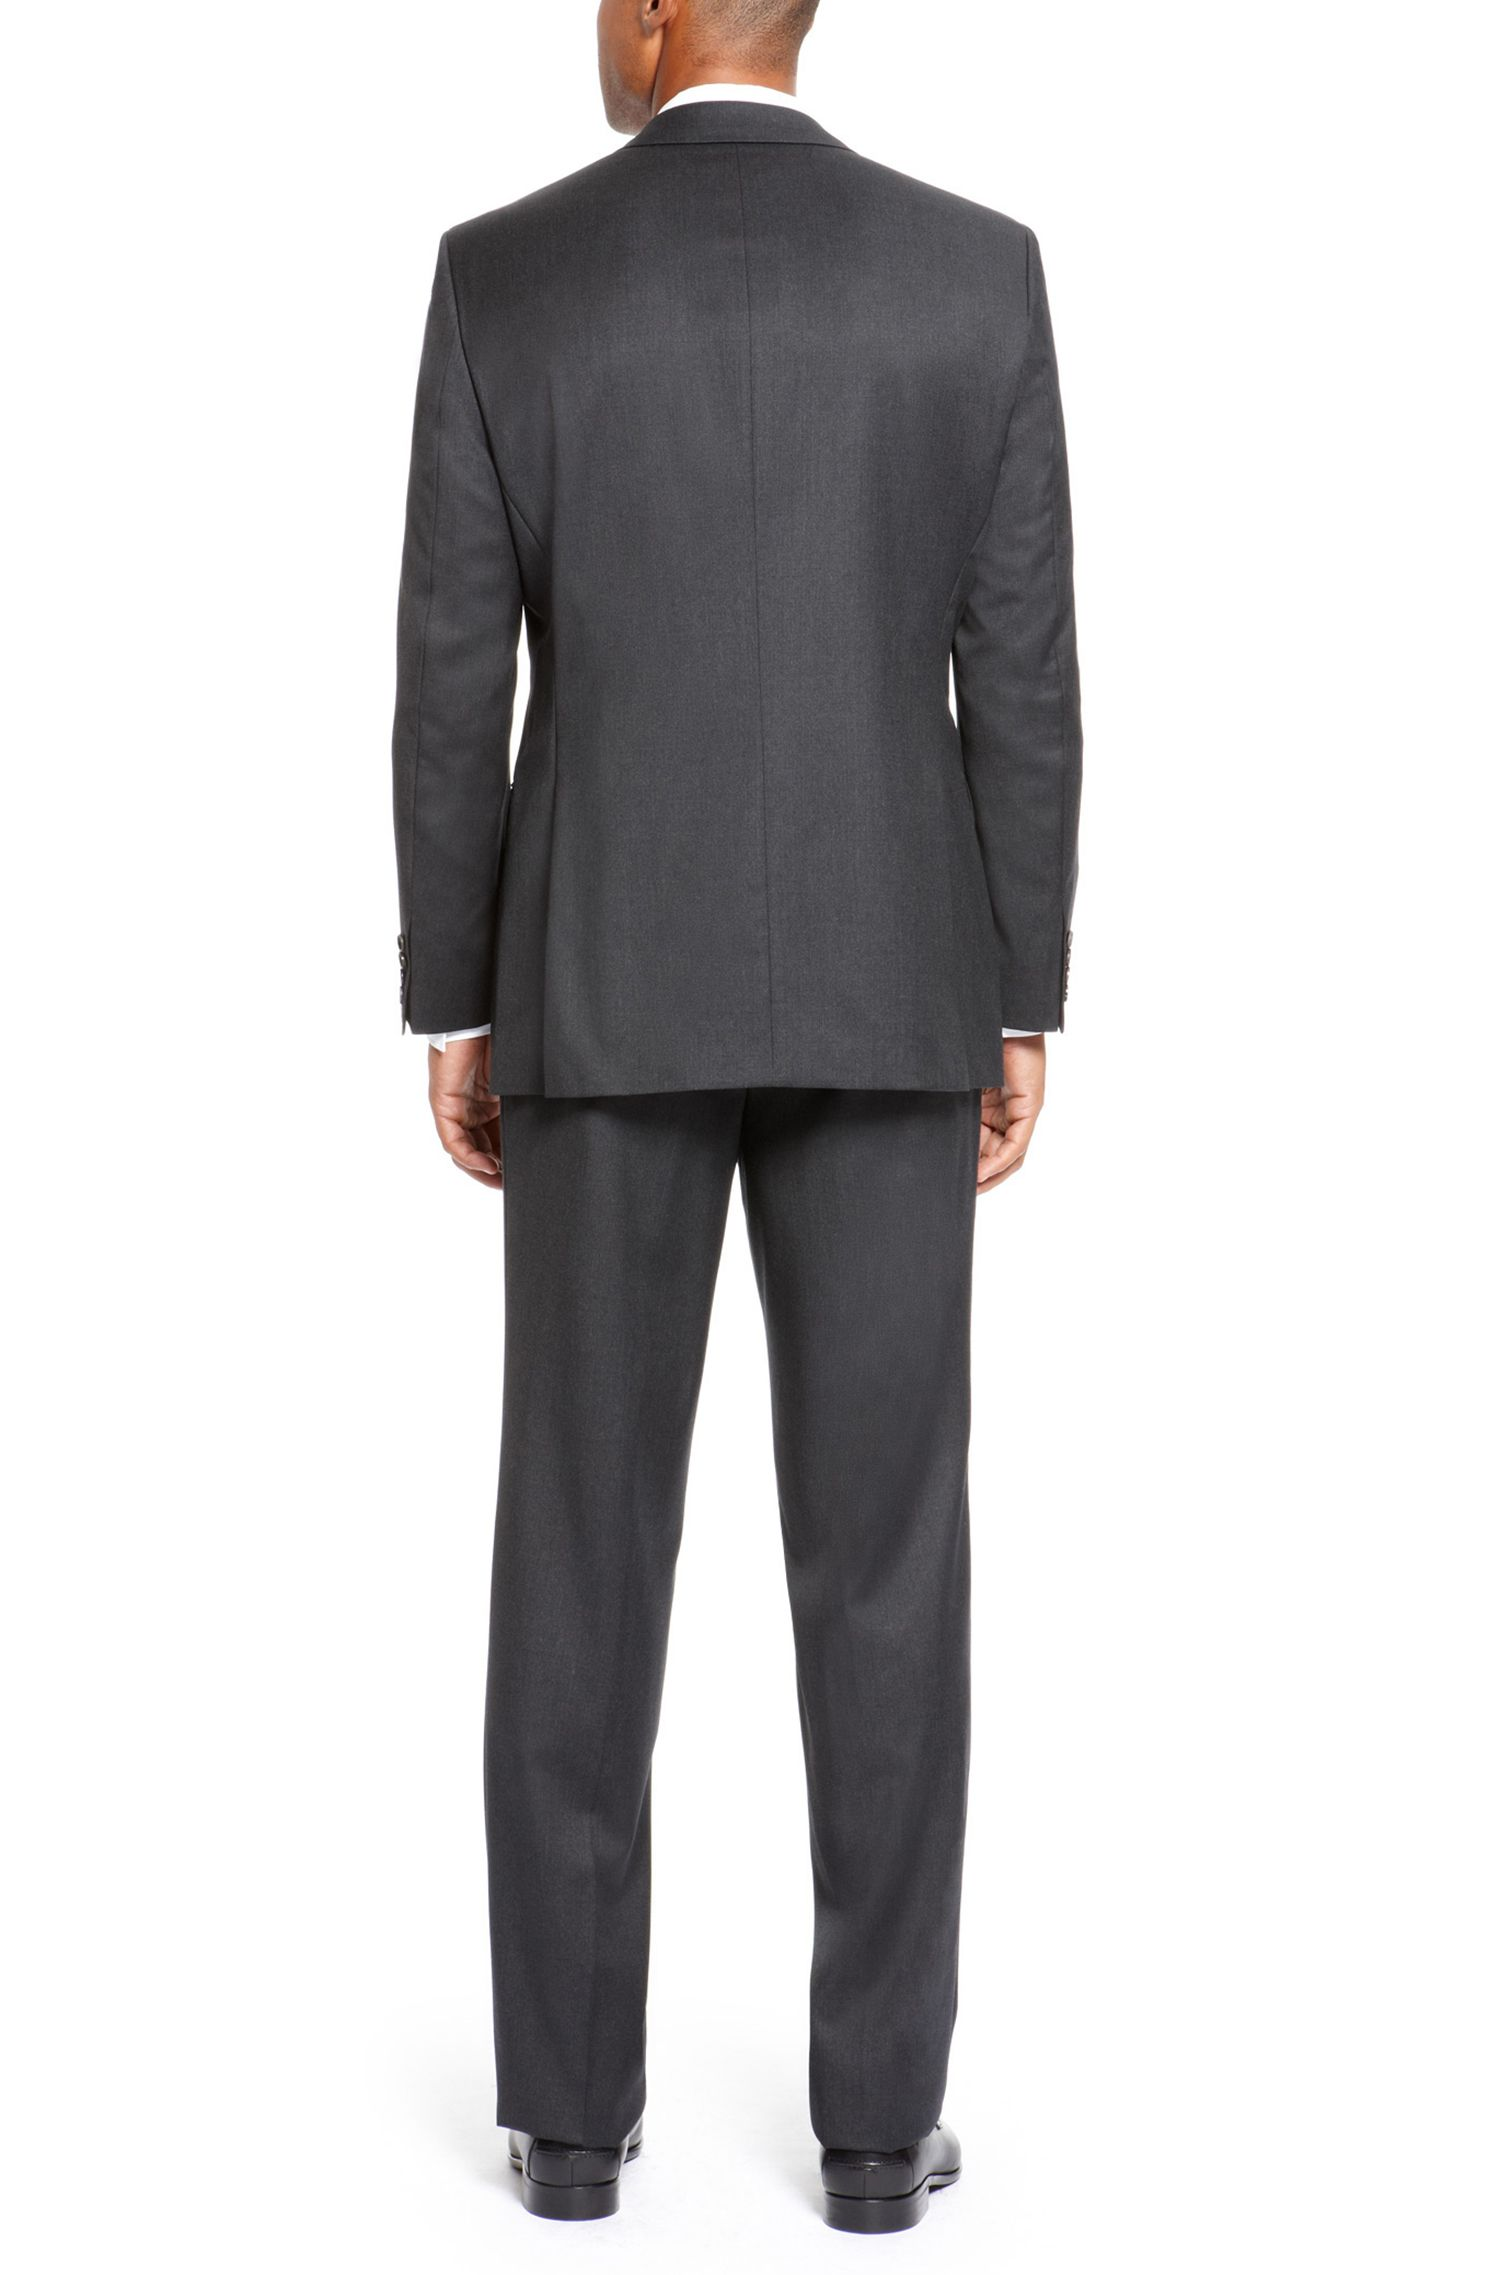 'Pasolini/Movie' | Comfort Fit, Super 110 Virgin Wool Suit